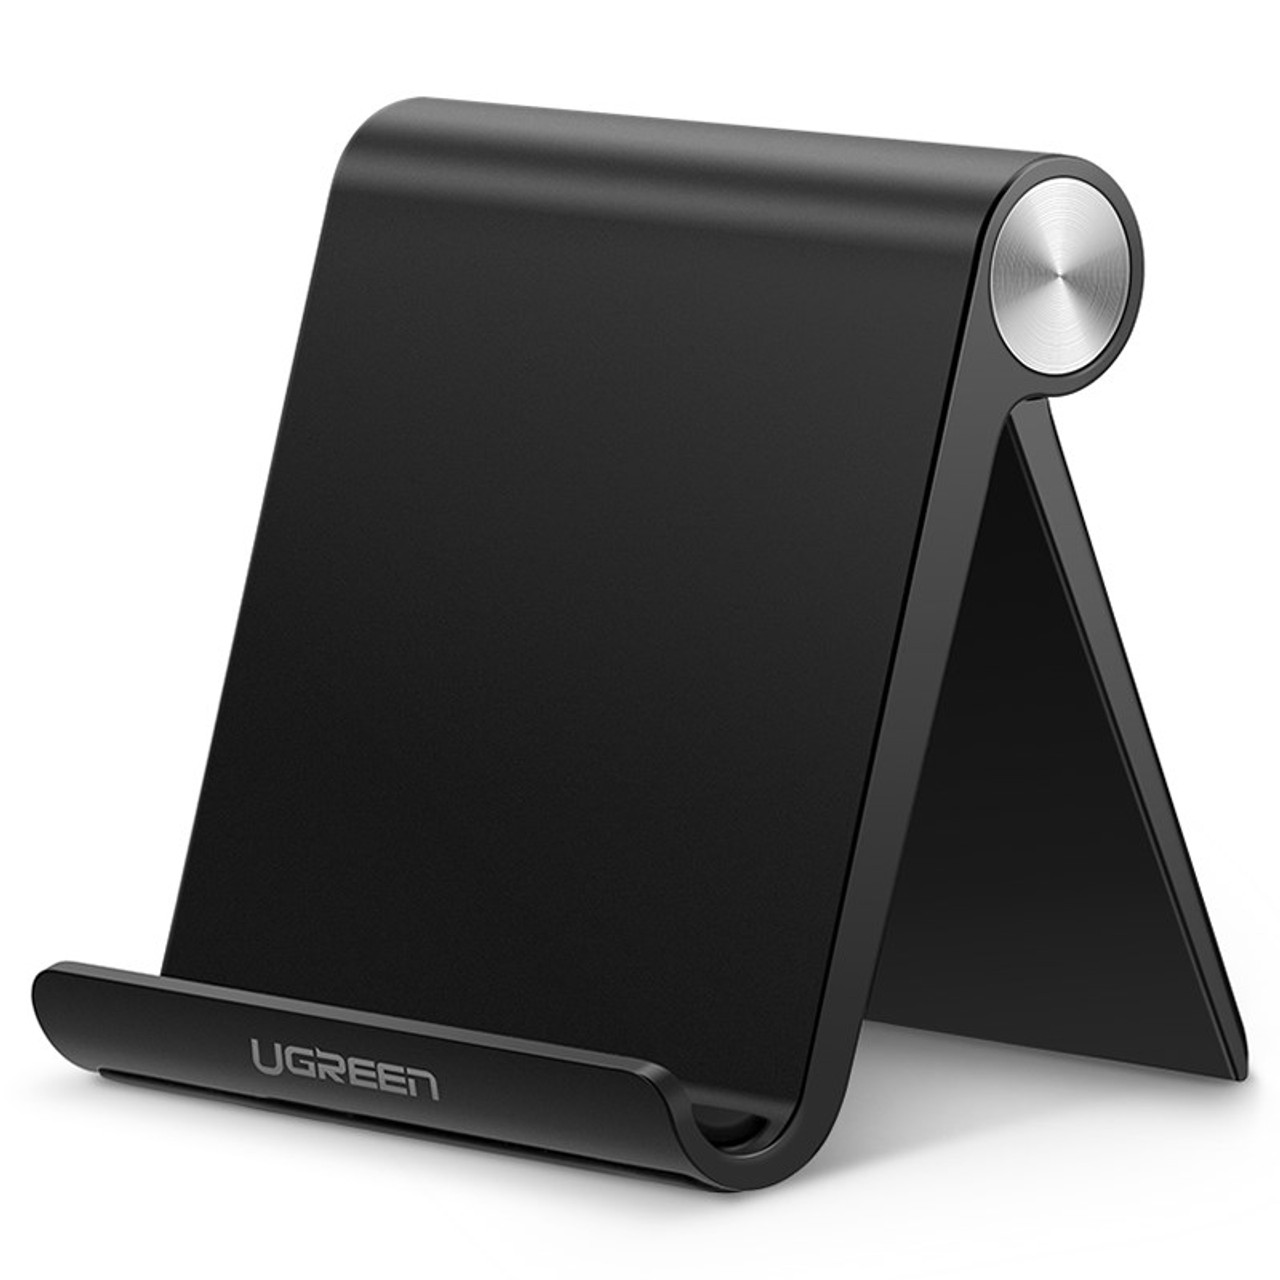 Image for UGreen 50747 Adjustable Portable Phone Stand - Black CX Computer Superstore